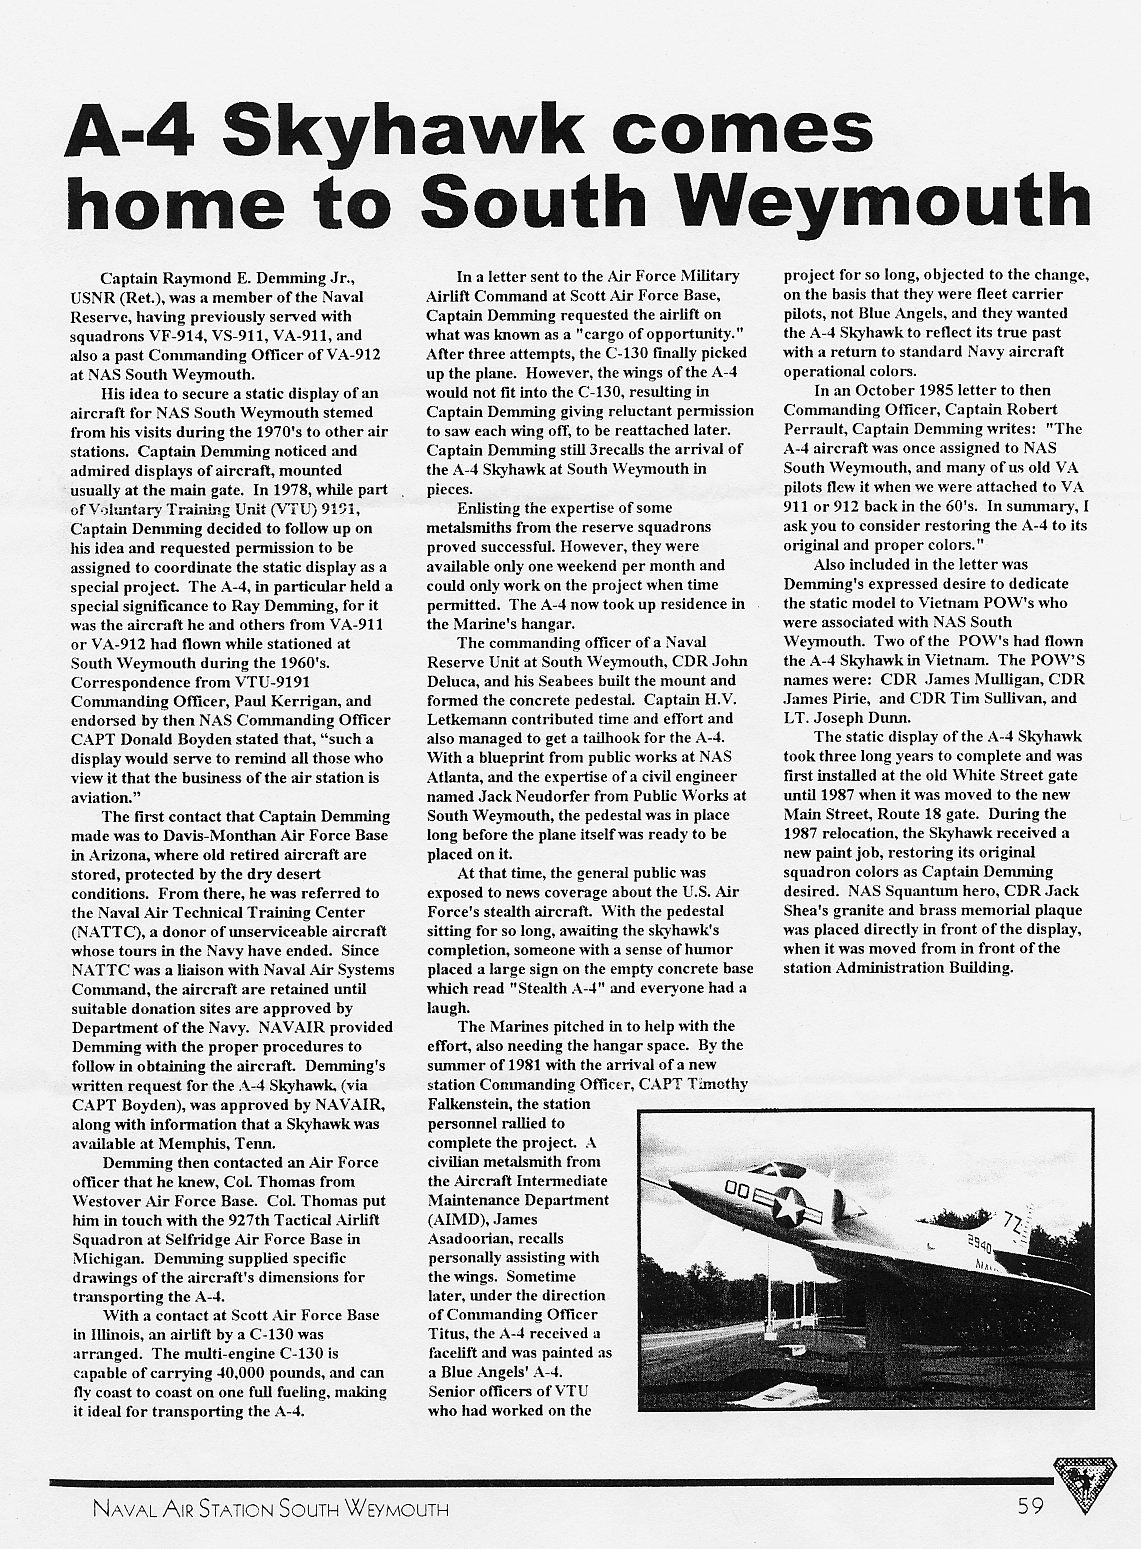 nas-south-weymouth7.jpg